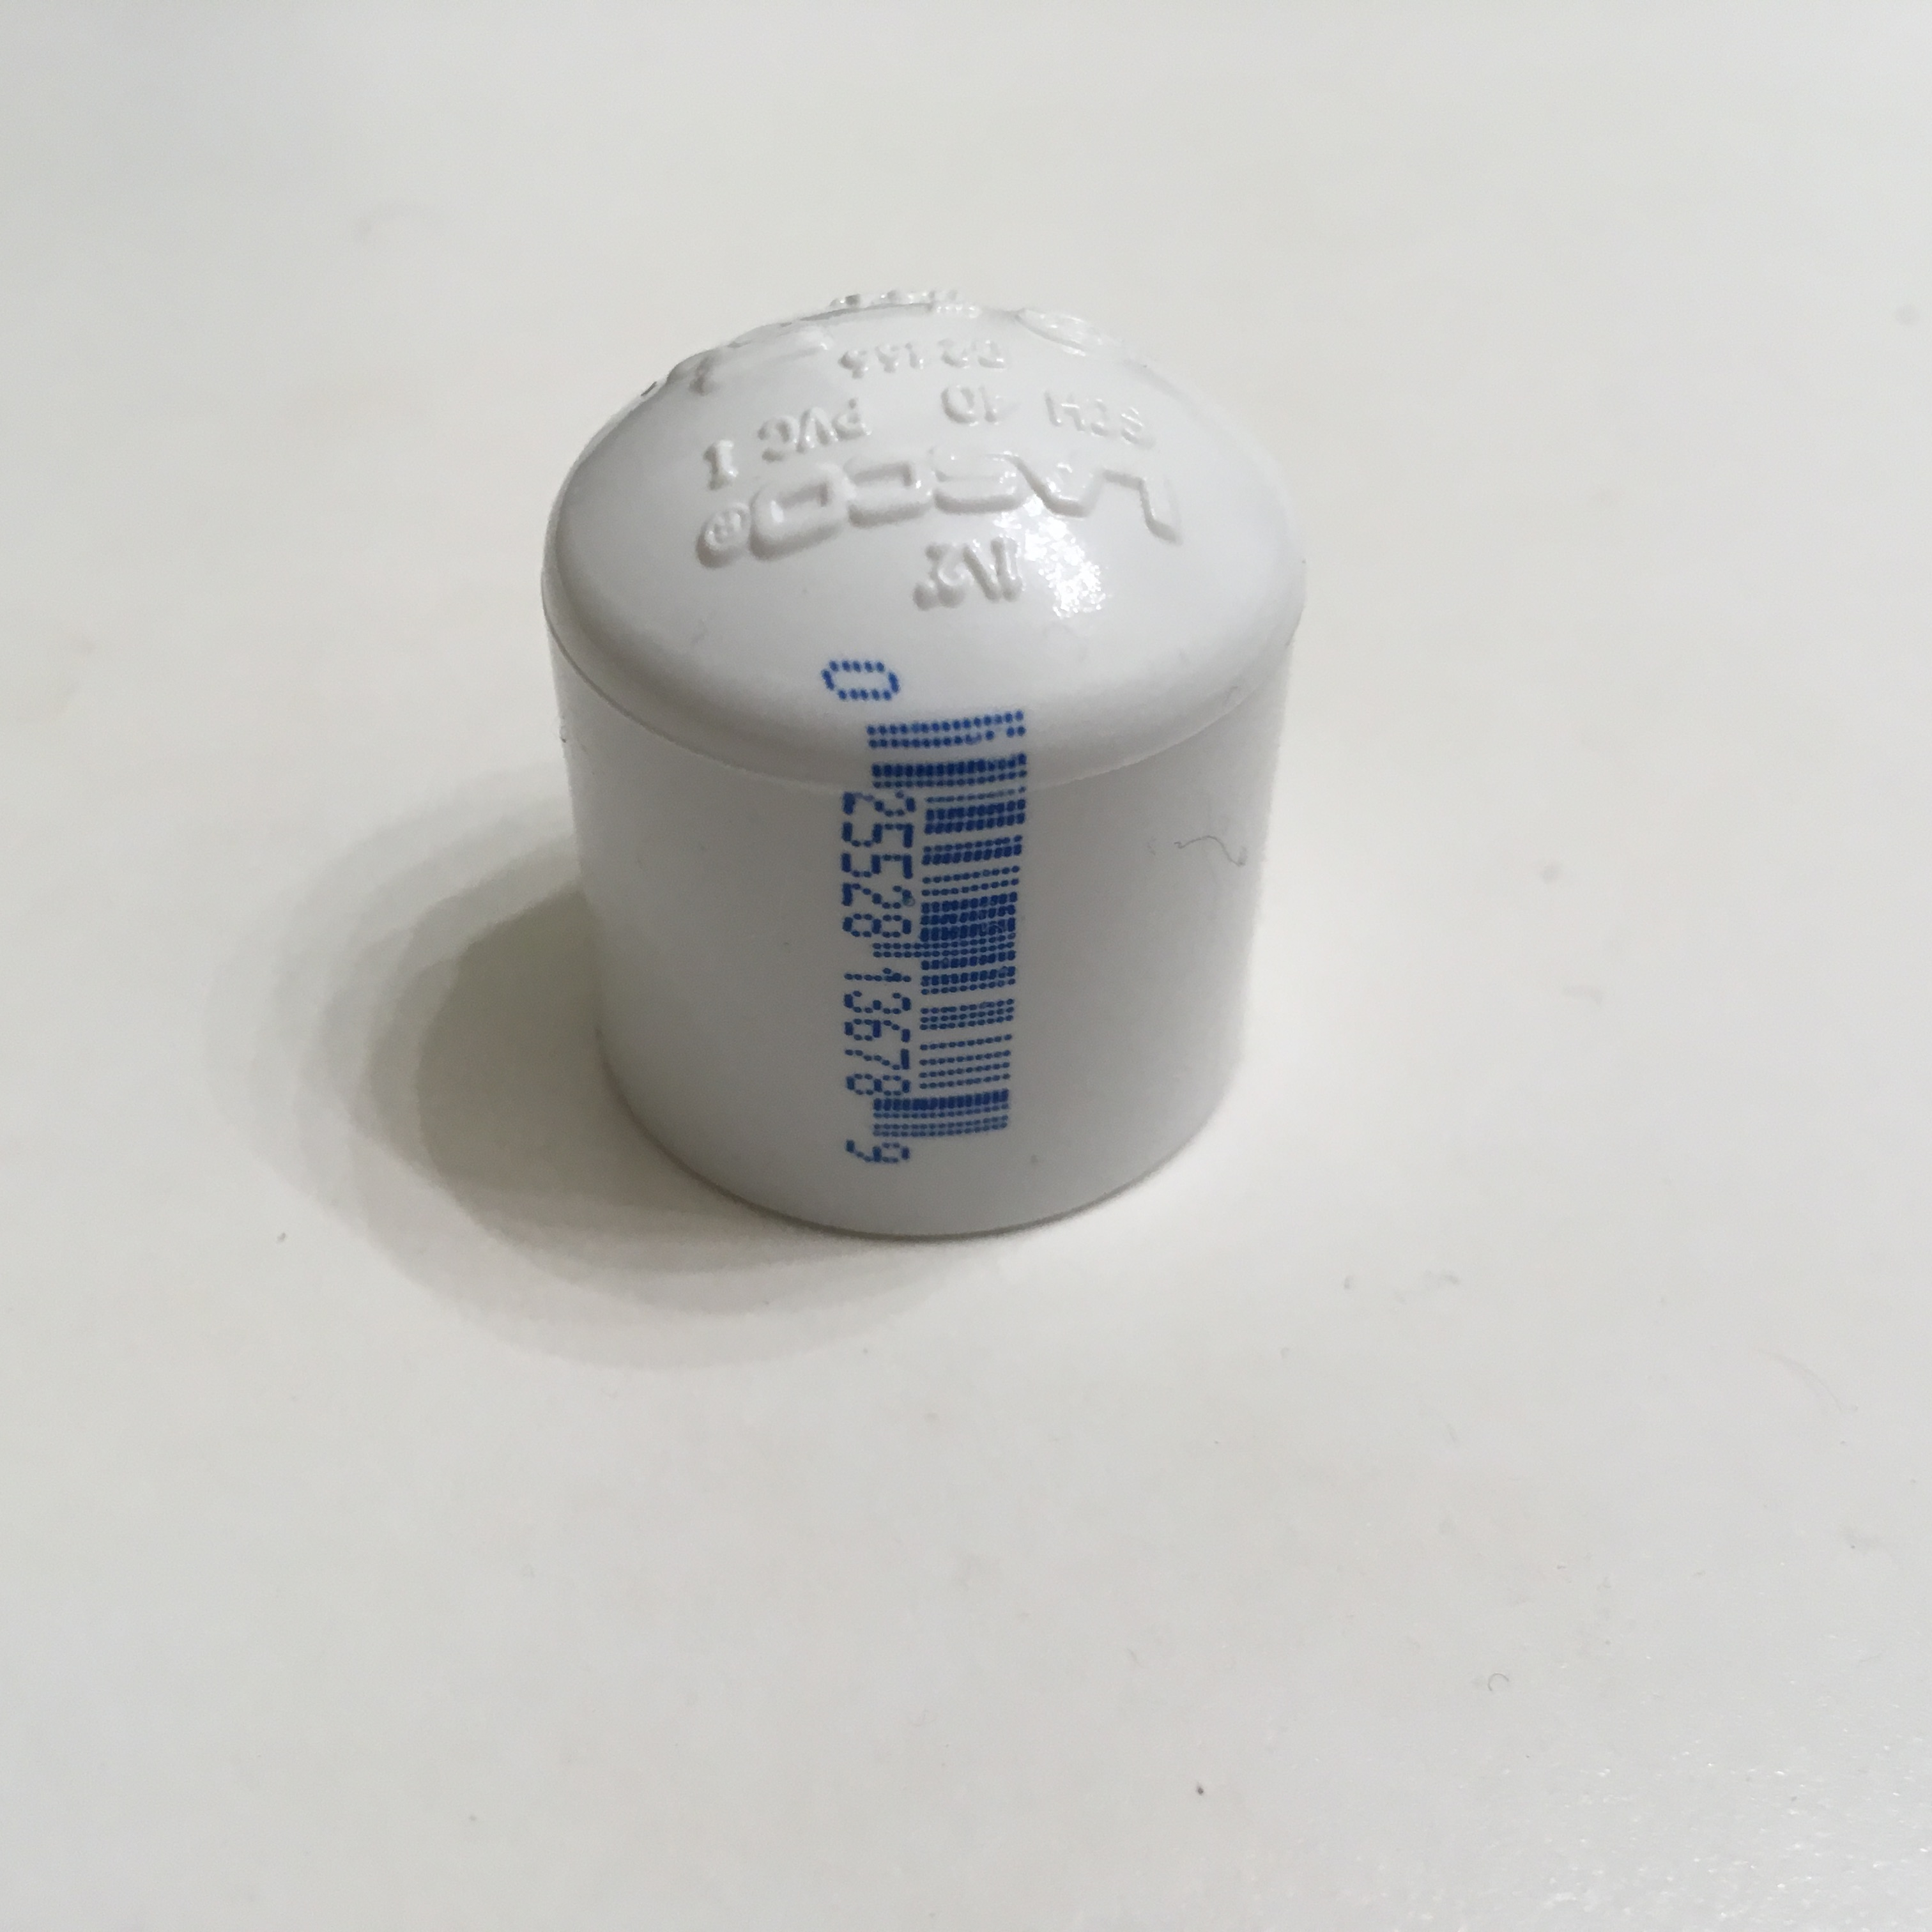 Water can cap 01